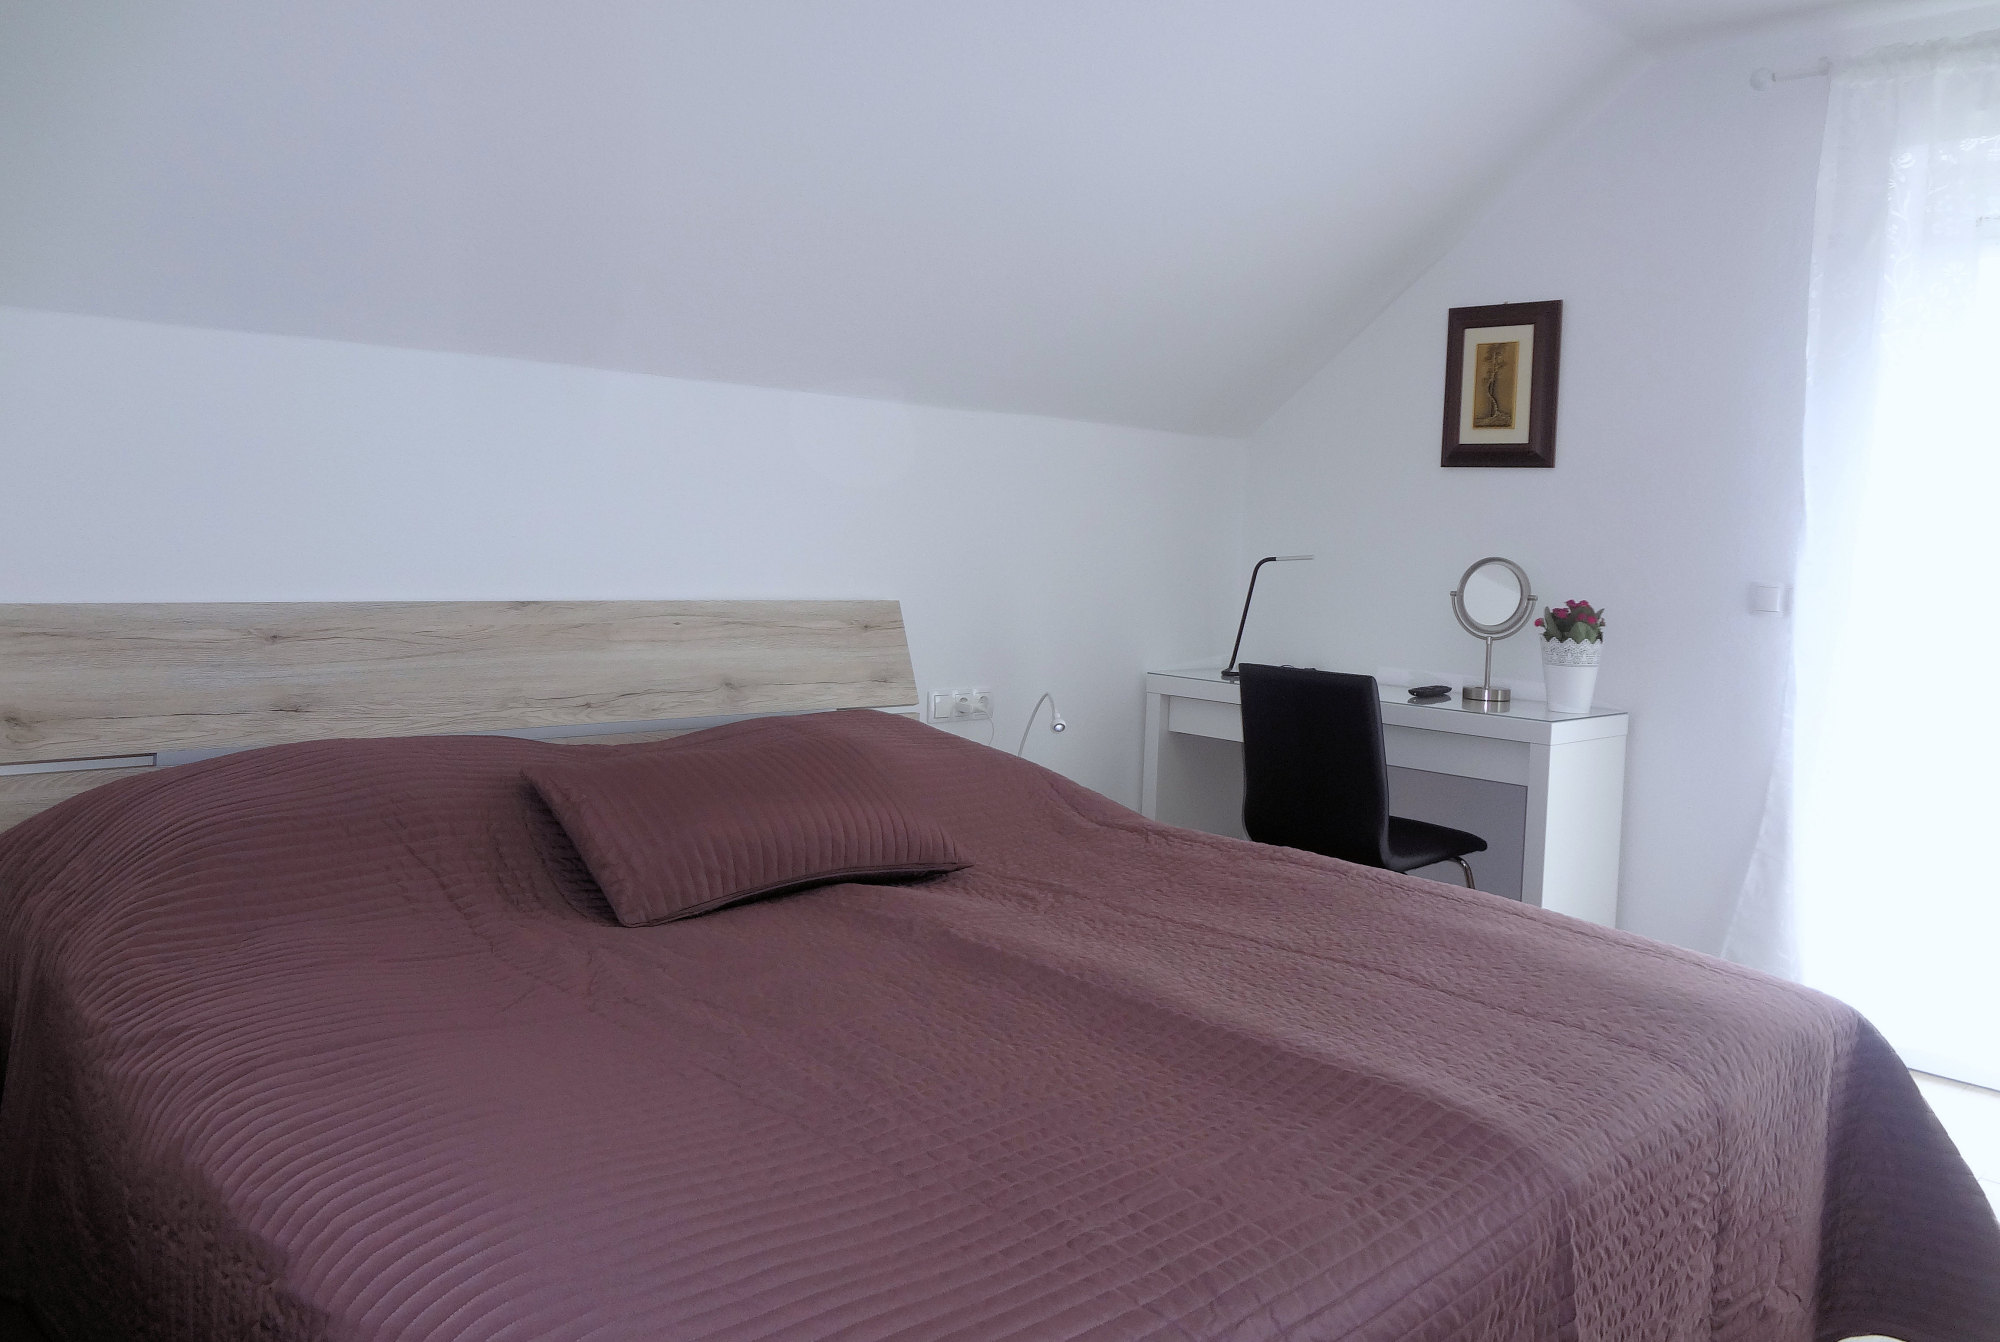 A king size double bed and a work desk in the bedroom of Fine Stay Apartment in Slovenia